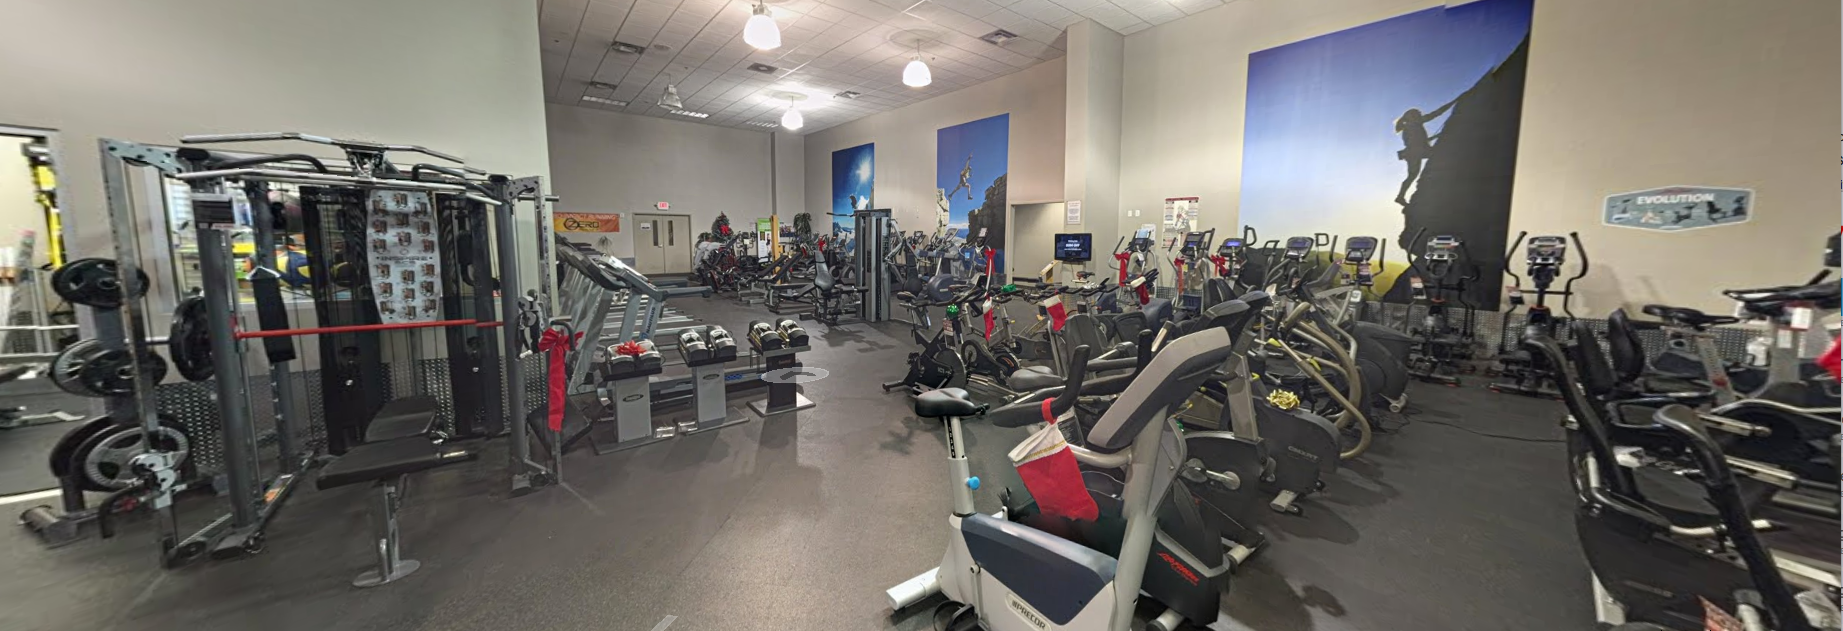 Leisure Fitness Equipment Showrooms